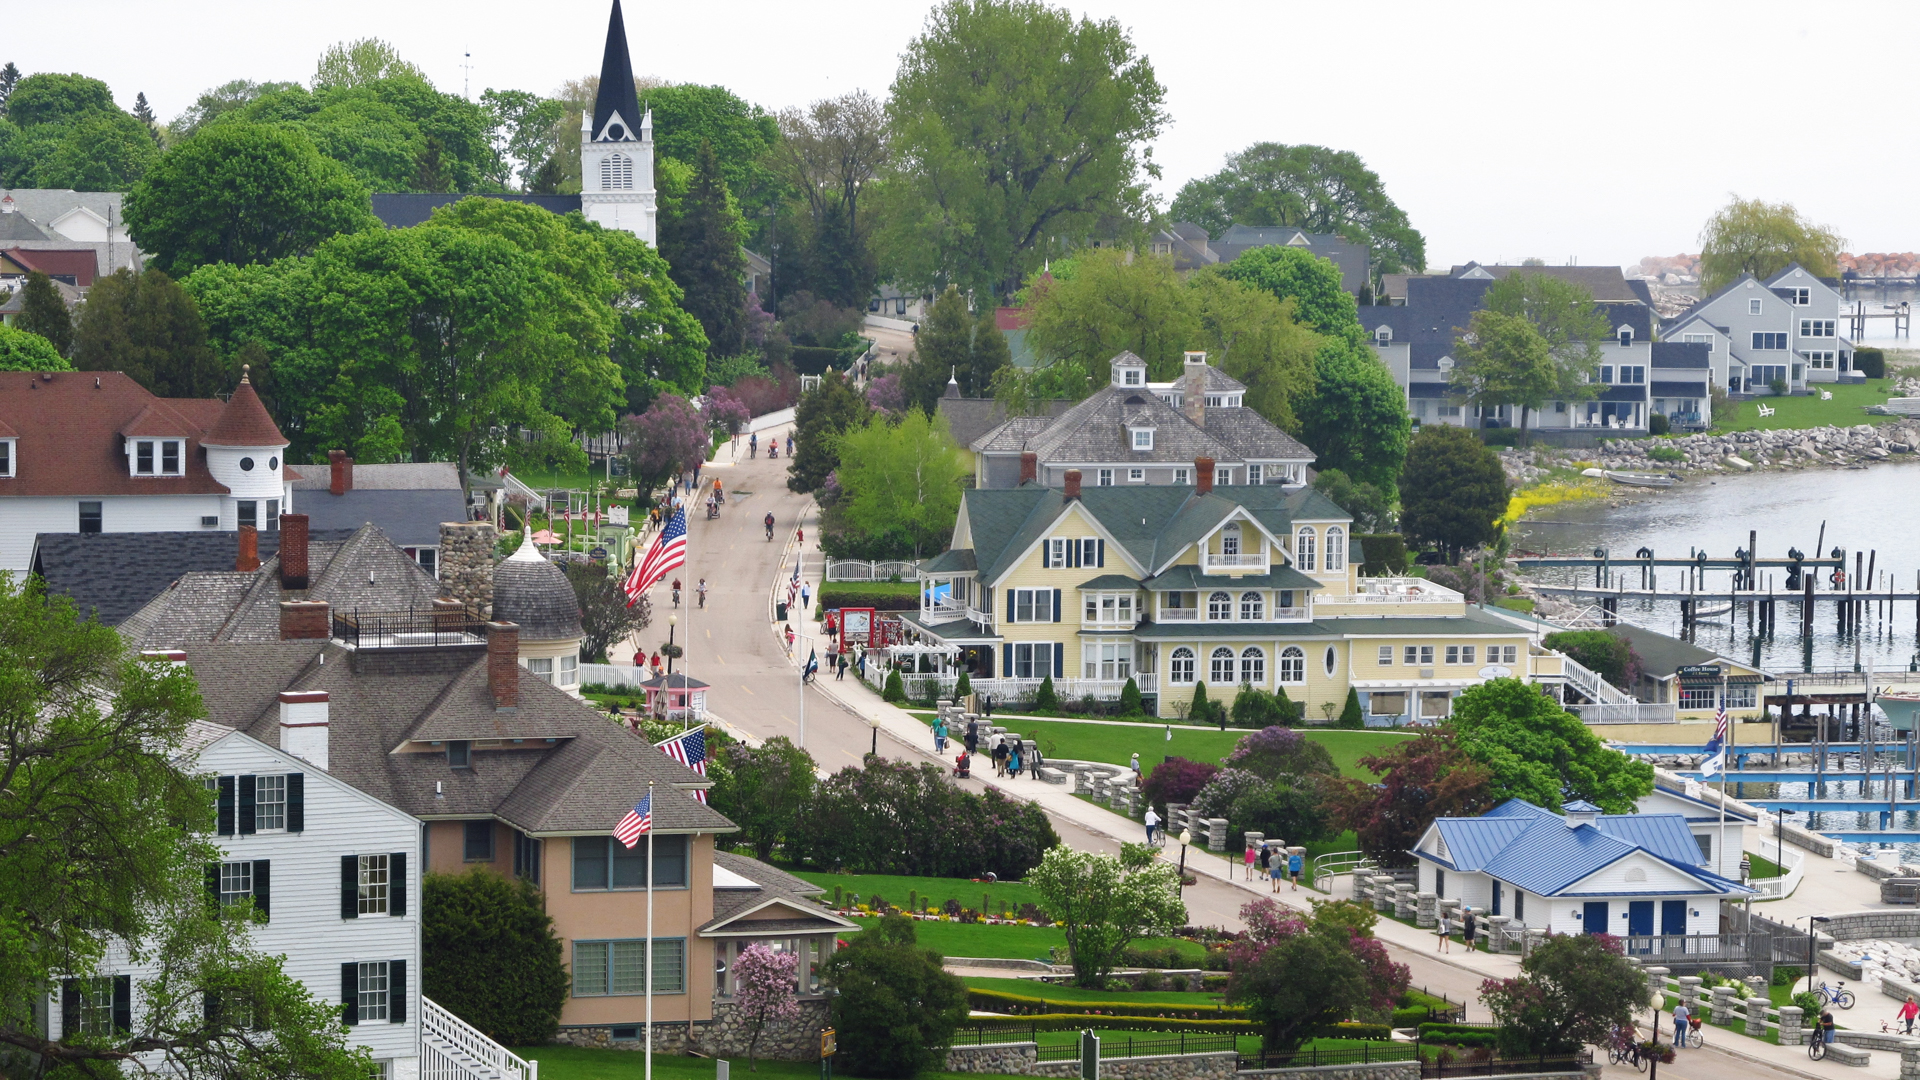 Slide 23 of 51: Cost: From around $250 to $310 nightly for hotel stays Known as the jewel of the Great Lakes, Mackinac Island is more than just a gem in name. More than 1,600 (mostly) adorable rooms give you access to a cornucopia of sailing options, carriage tours, shopping, biking, dining, hiking and horseback riding, all against a backdrop that'll make you feel like you just joined the yacht club in 1962. And you'll definitely be boating, because there are no cars on Mackinac Island.